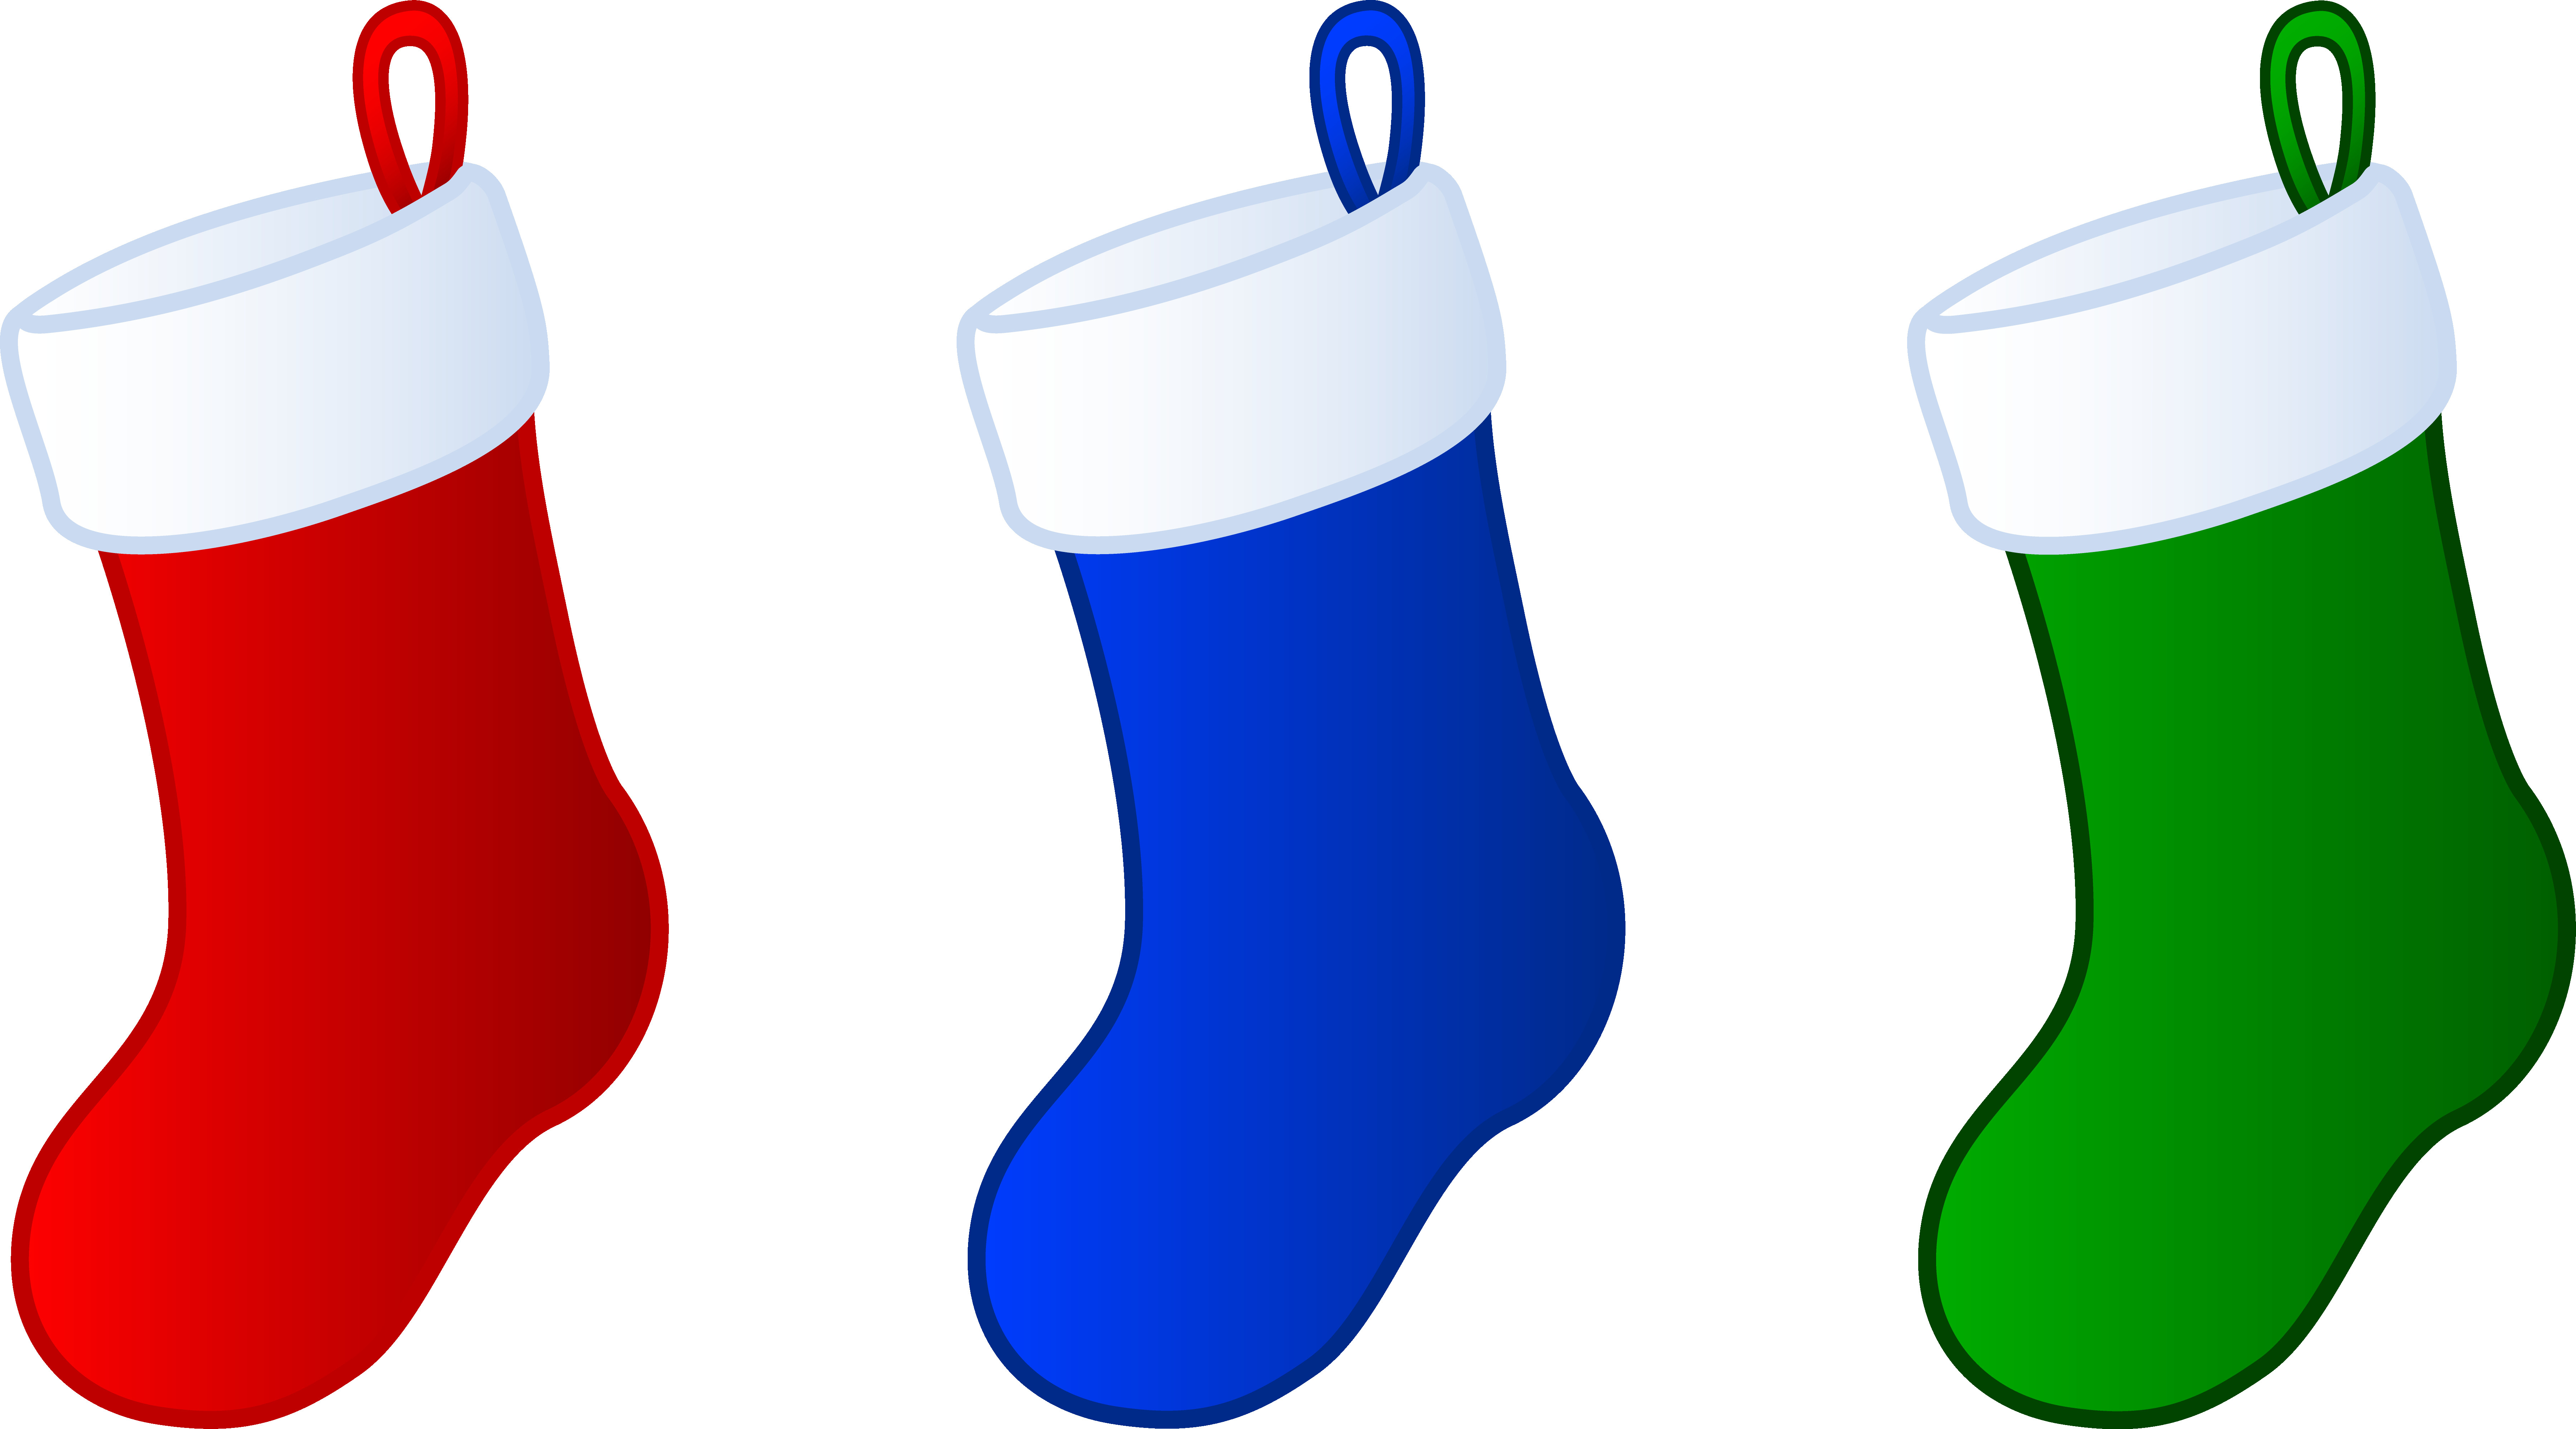 Free Christmas Stocking Clipart at GetDrawings.com | Free for ...